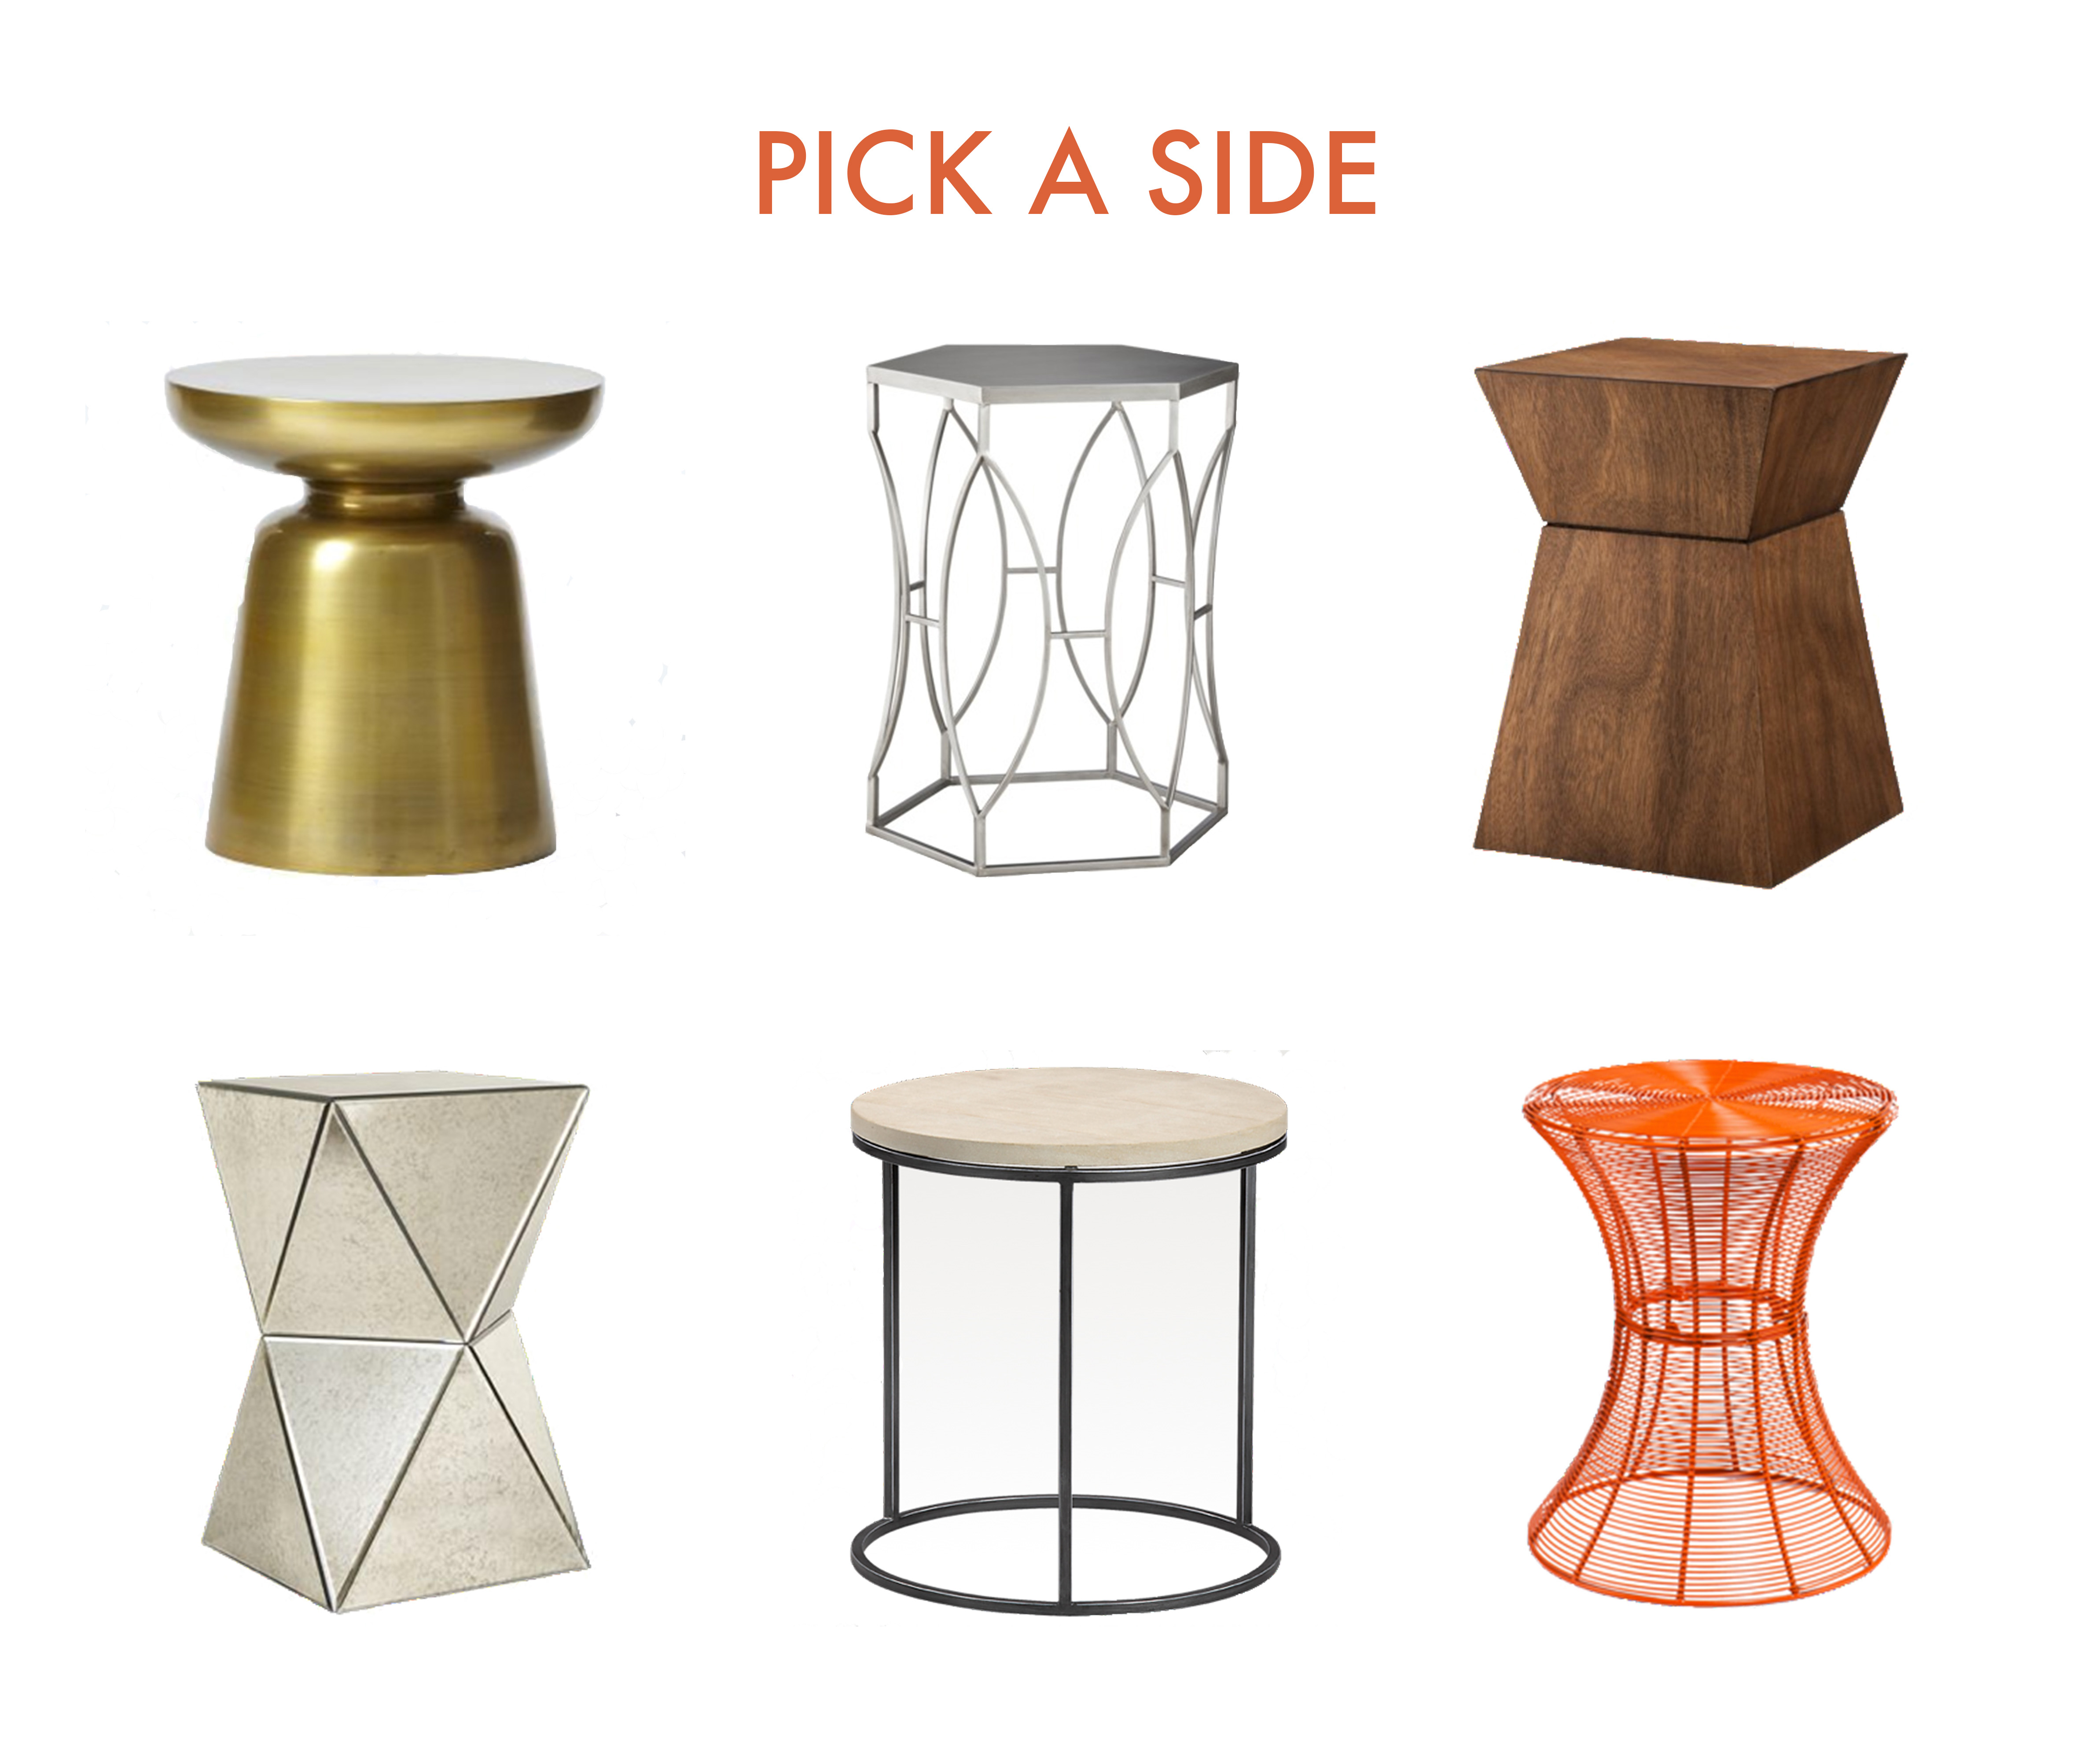 side table for every occasion scout and arrow sidetables threshold accent marble glass patio outdoor wood dining nautical chandelier light fixtures wooden trestle bunnings ashley